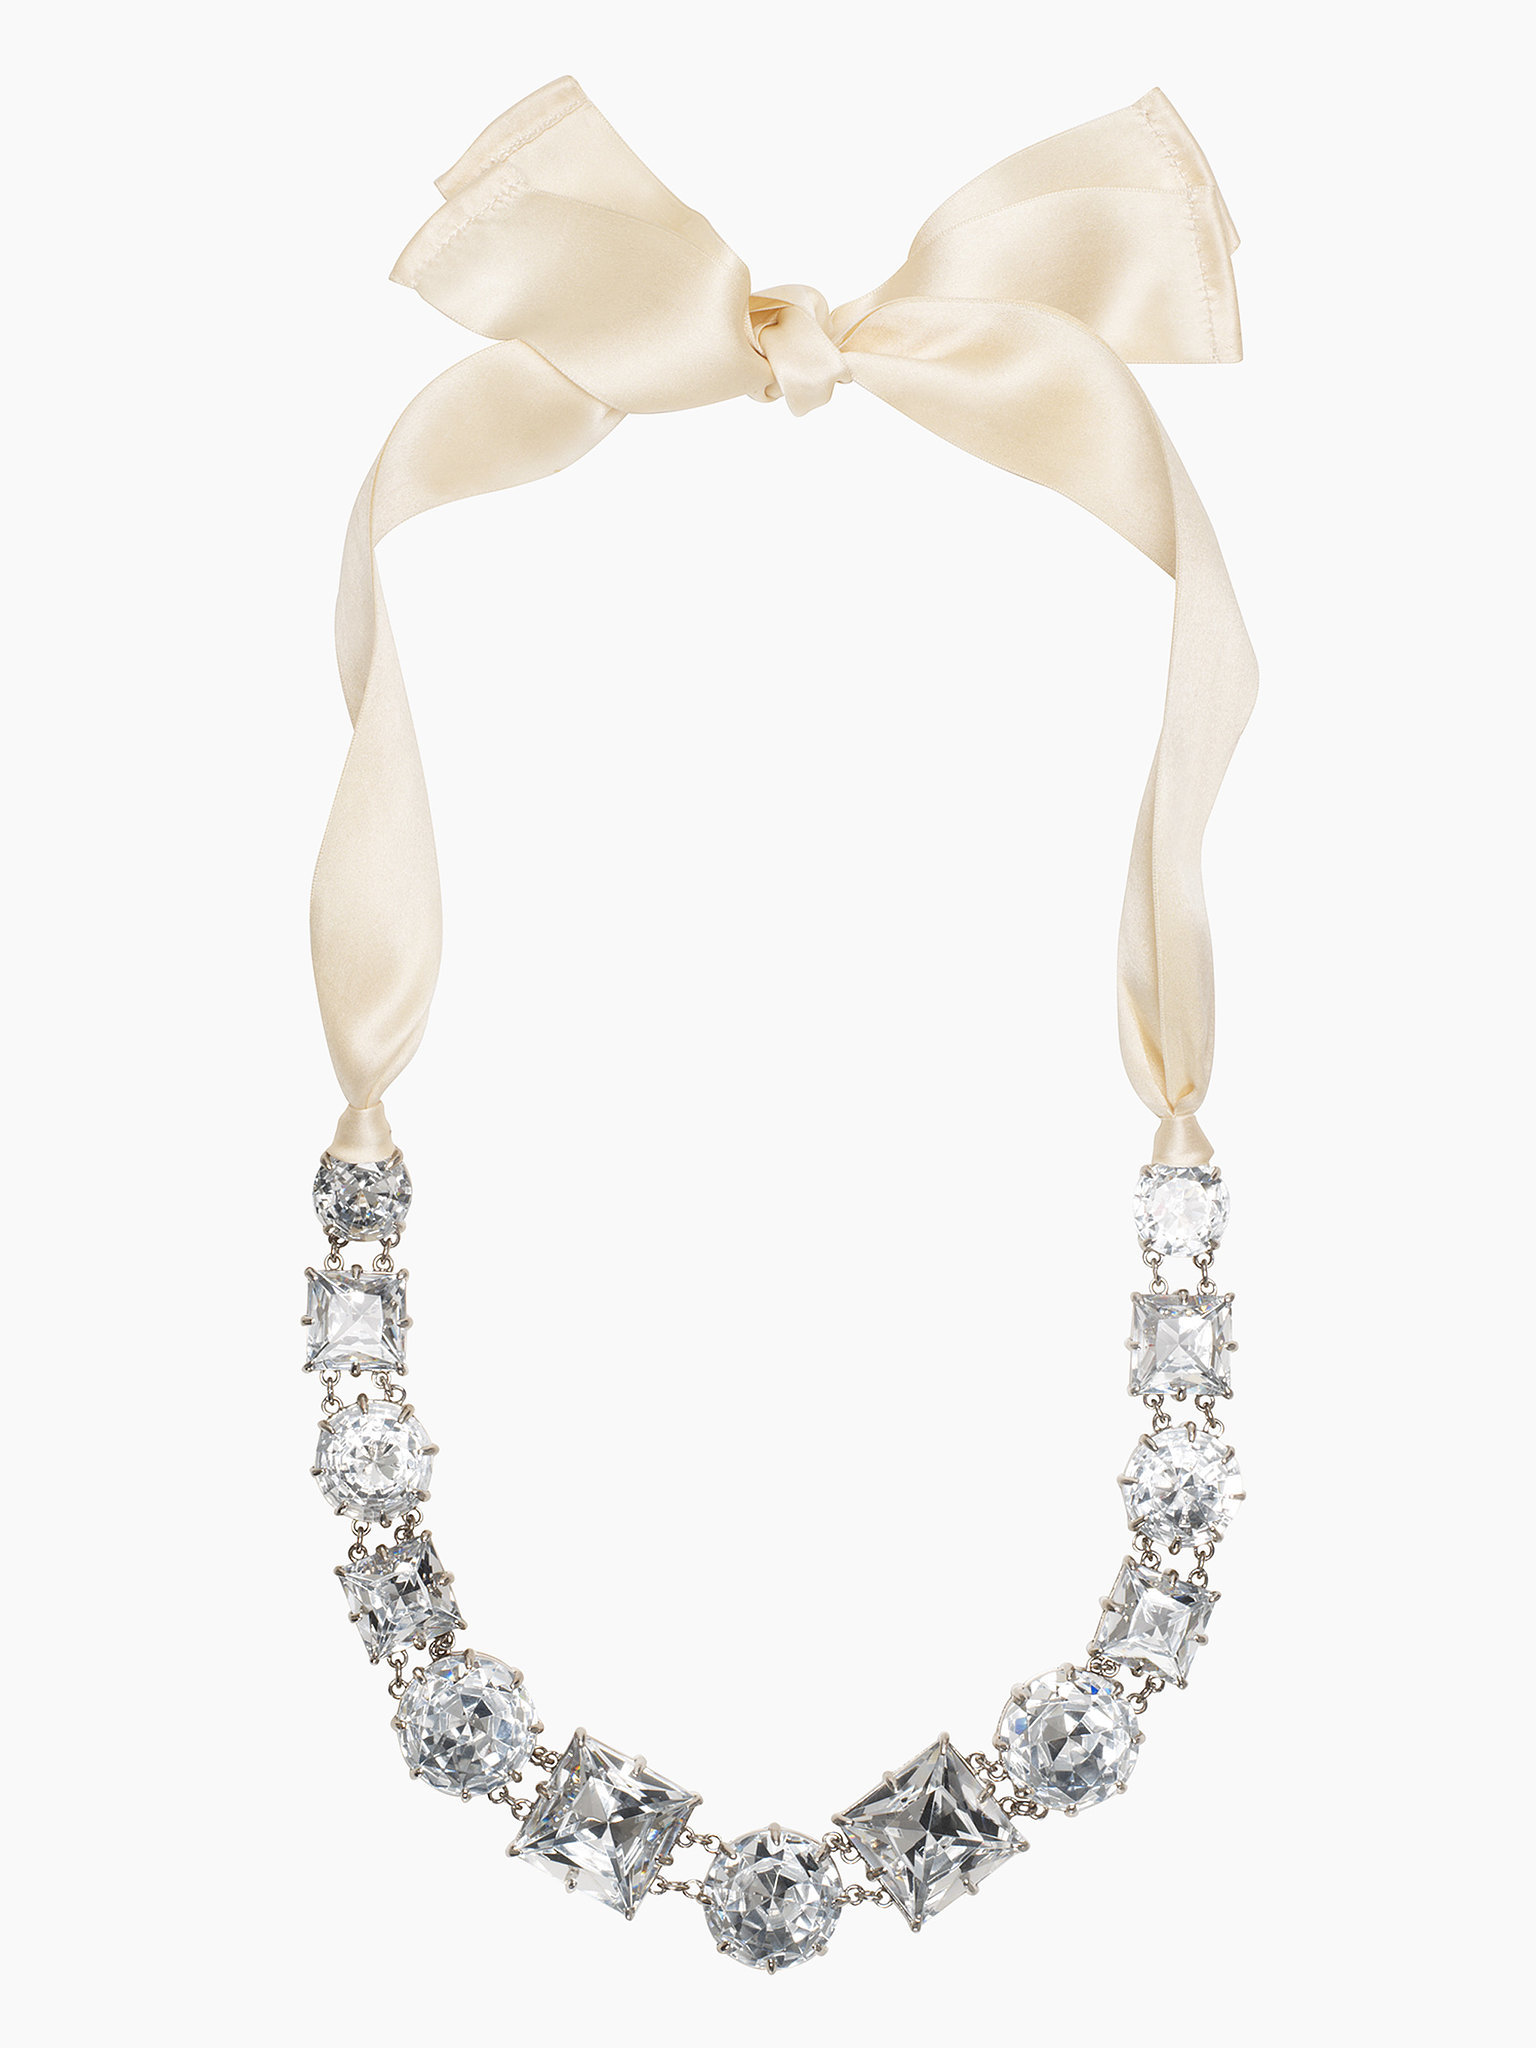 Kate Spade New York Crystal Kaleidoscope Necklace With Ribbon Tie ($129, originally $295)